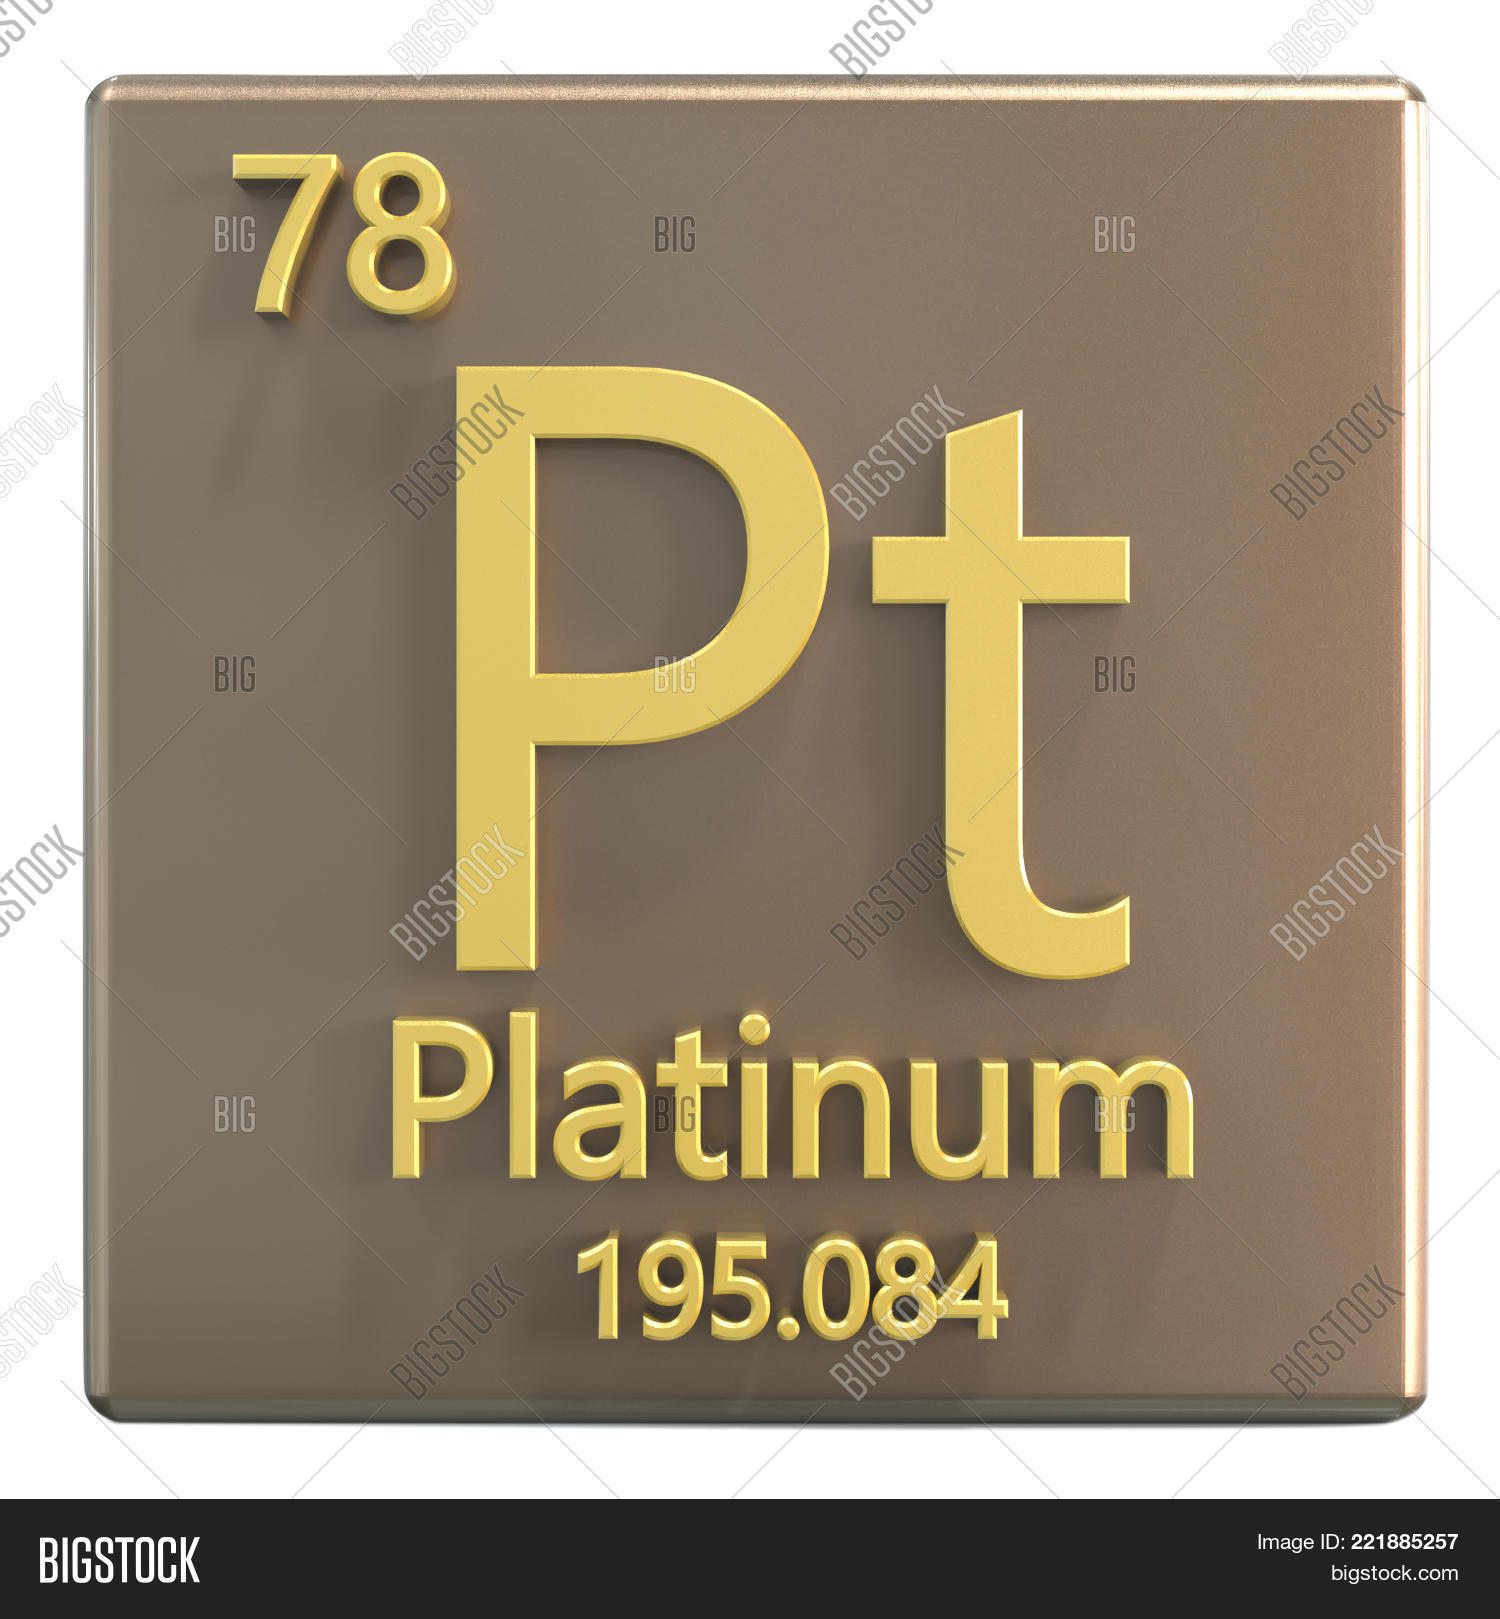 Platinum Chemical Image Photo Free Trial Bigstock